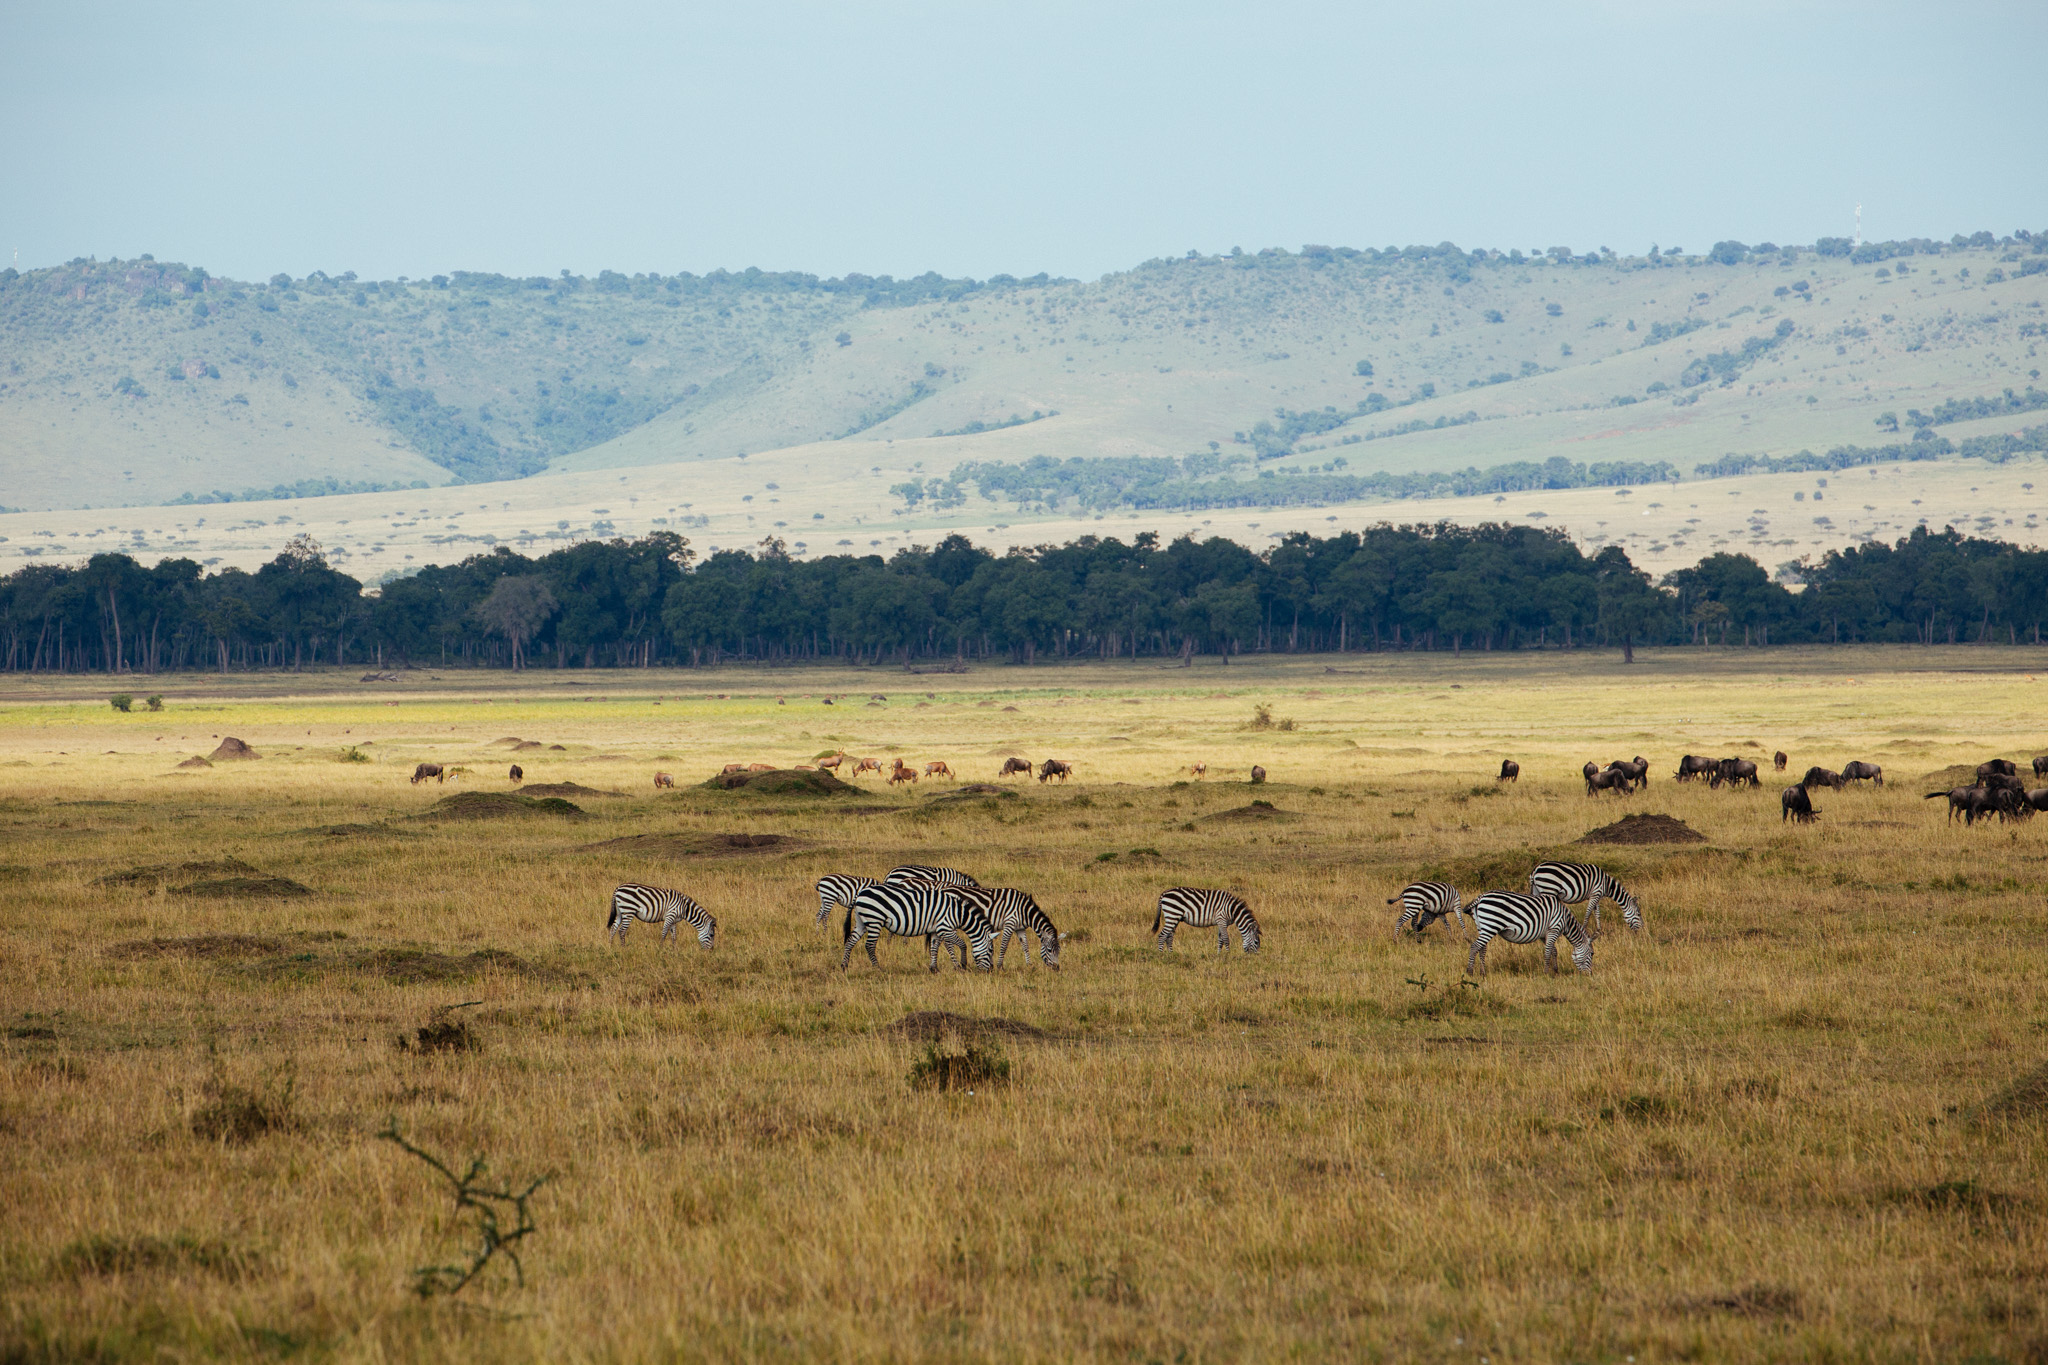 Just as we entered the Maasai Mara National Reserve…